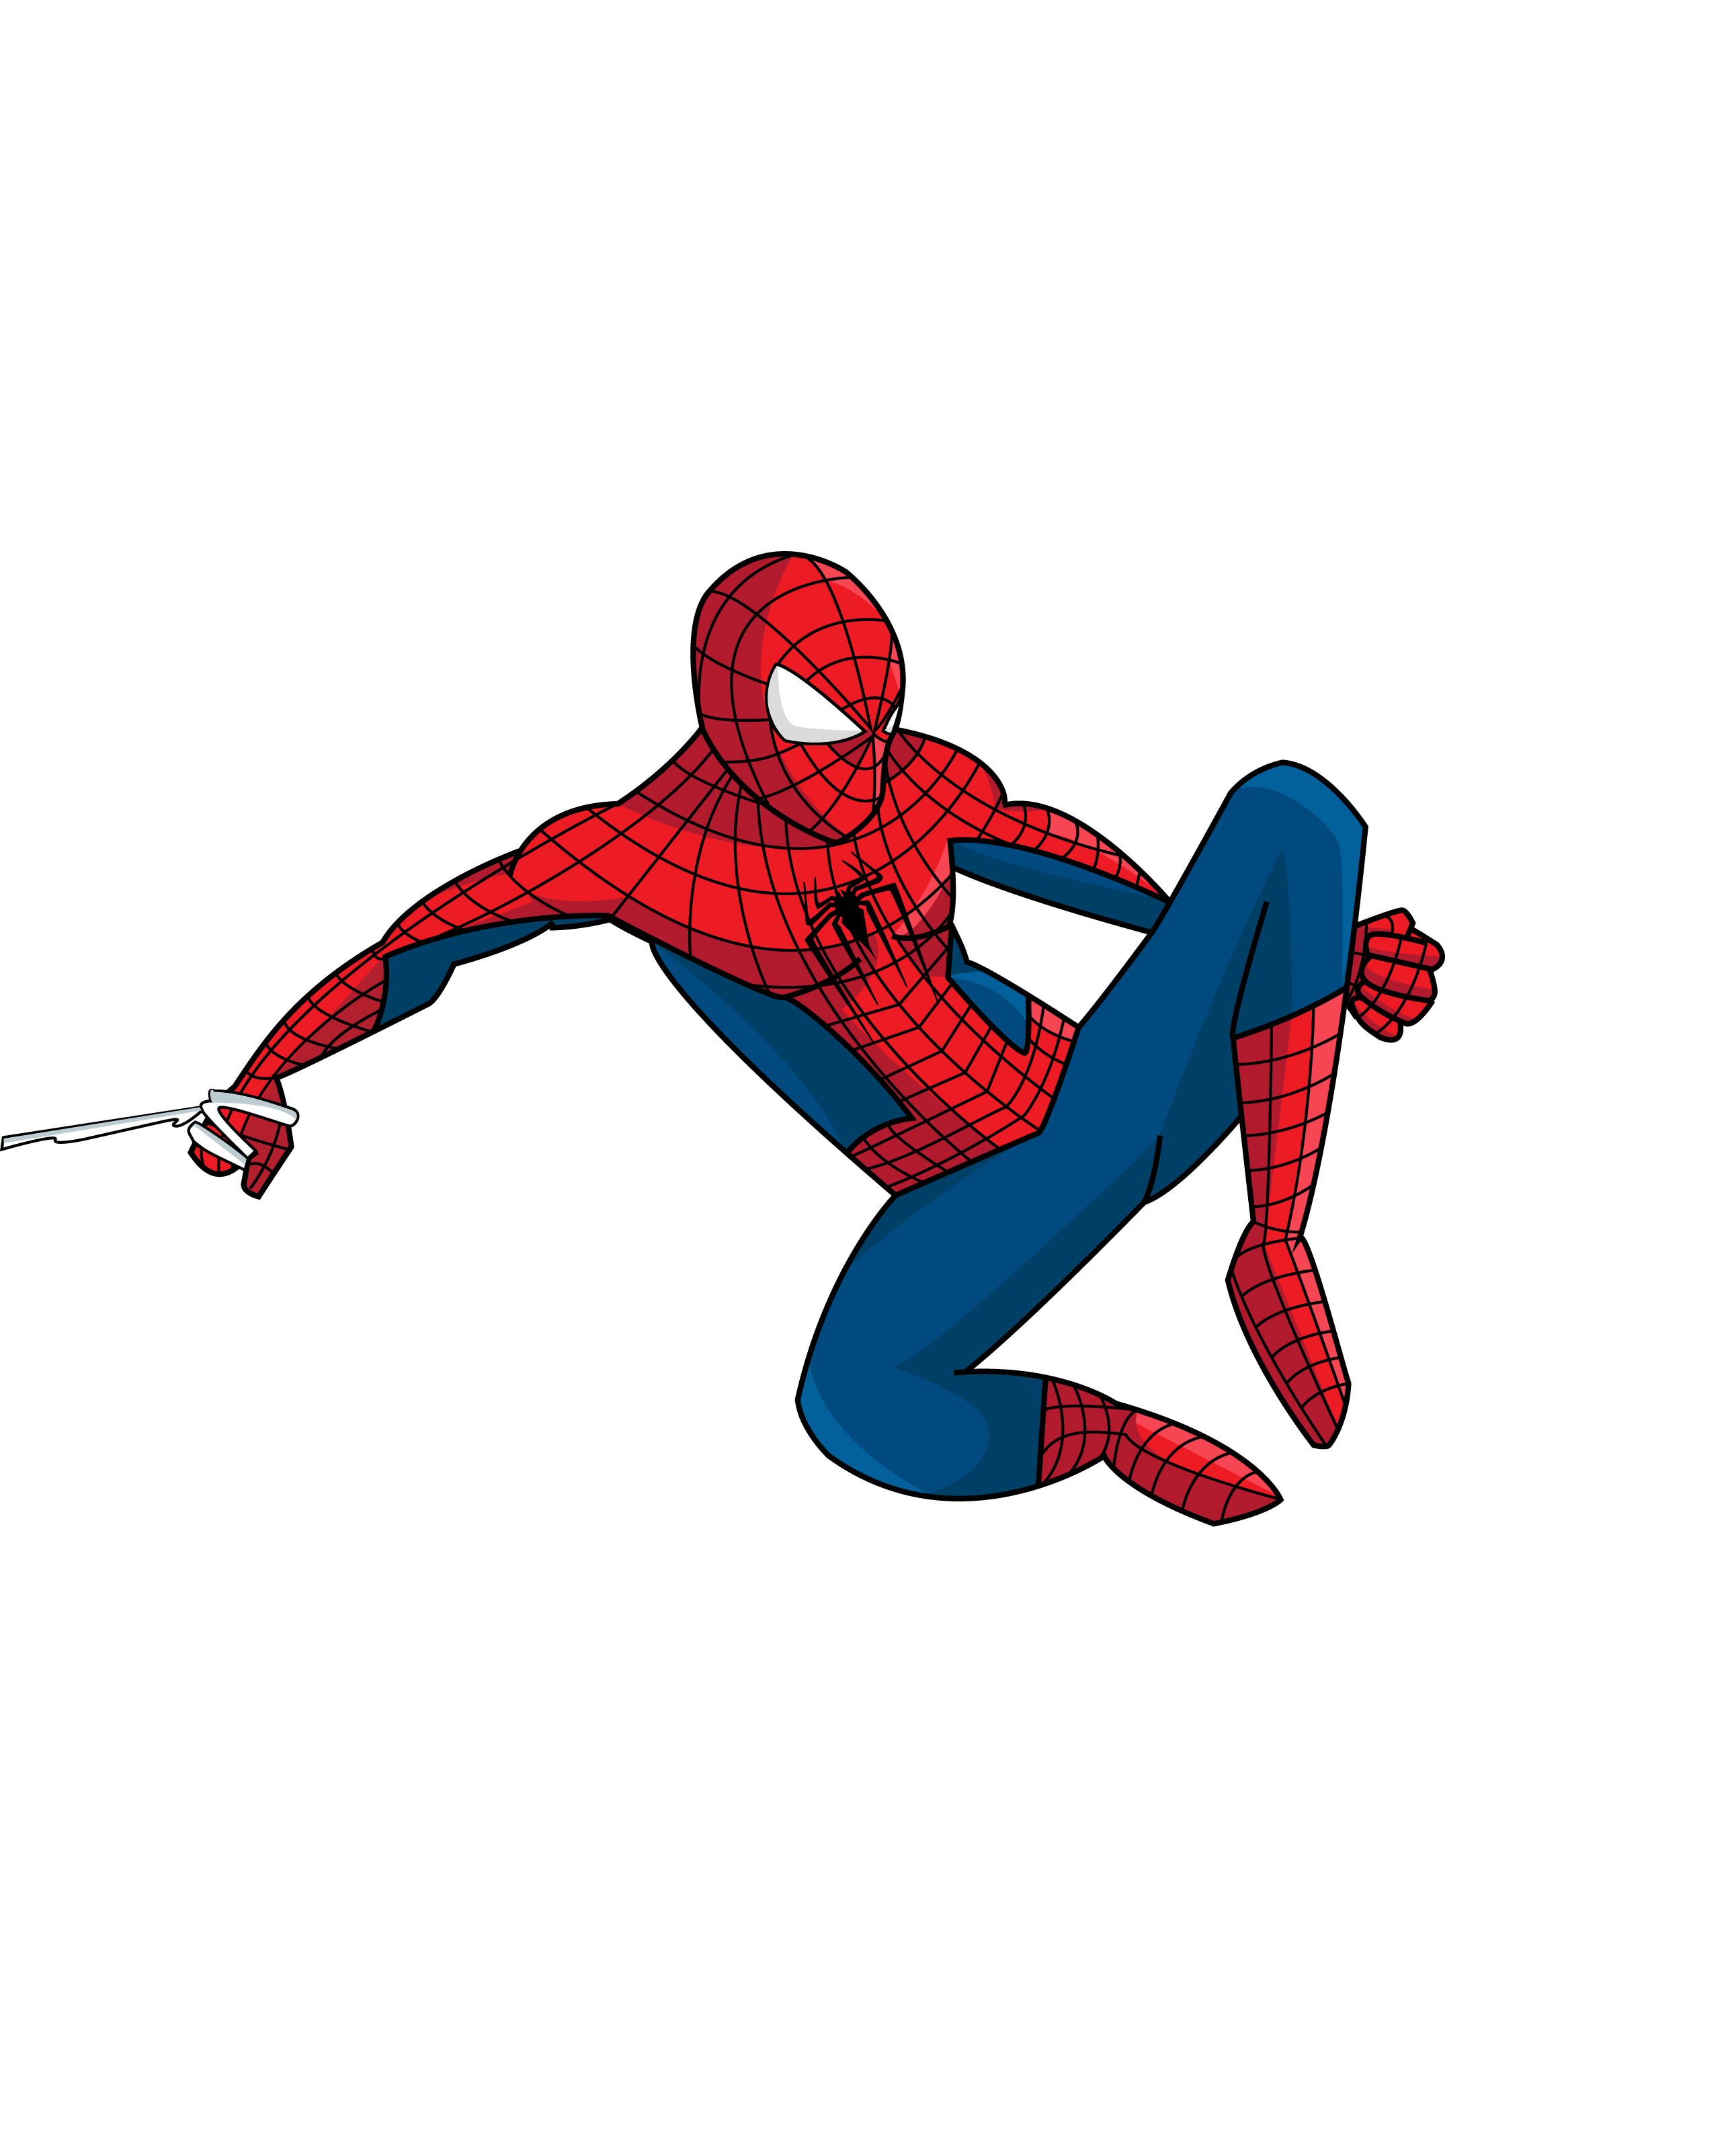 descriptive essay on spiderman He uses extremely descriptive writing and imagery that sucks you into the   miles morales follows the story of the newest spider-man as he.